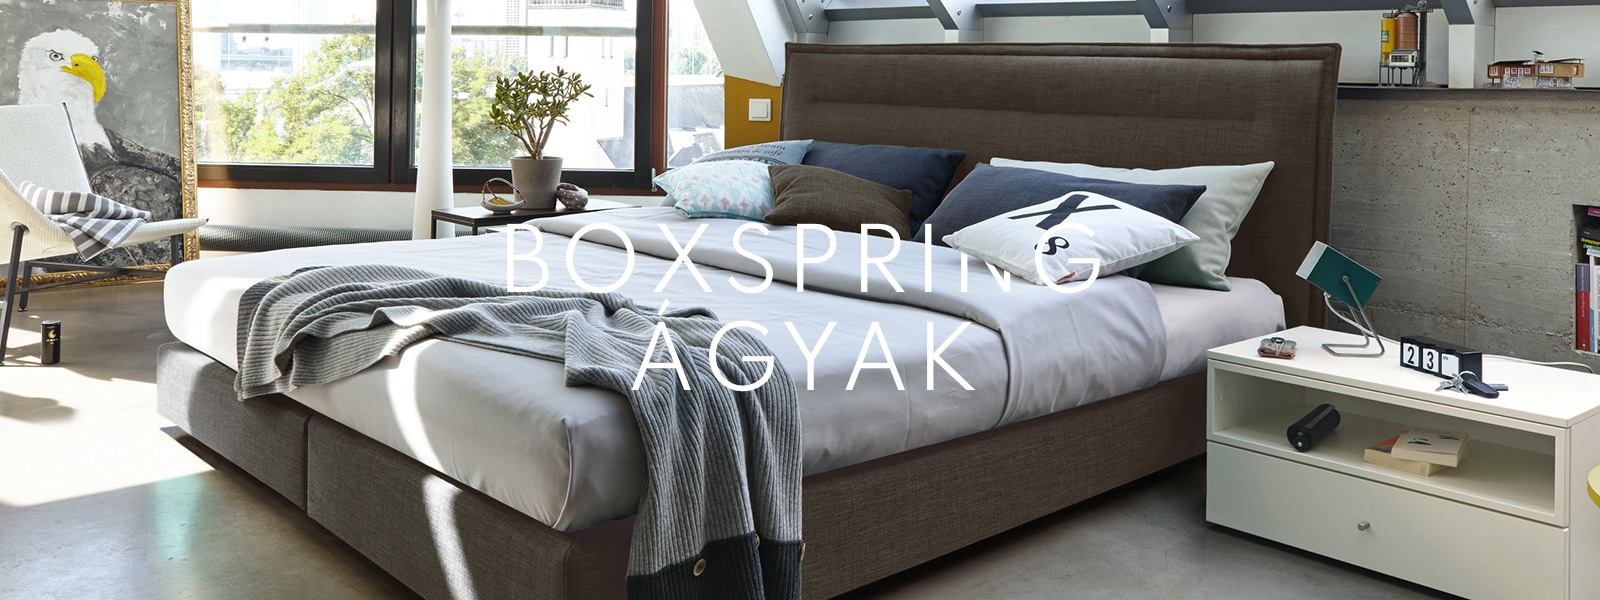 innoshop-boxspring-agyak-boxspring-beds.jpg